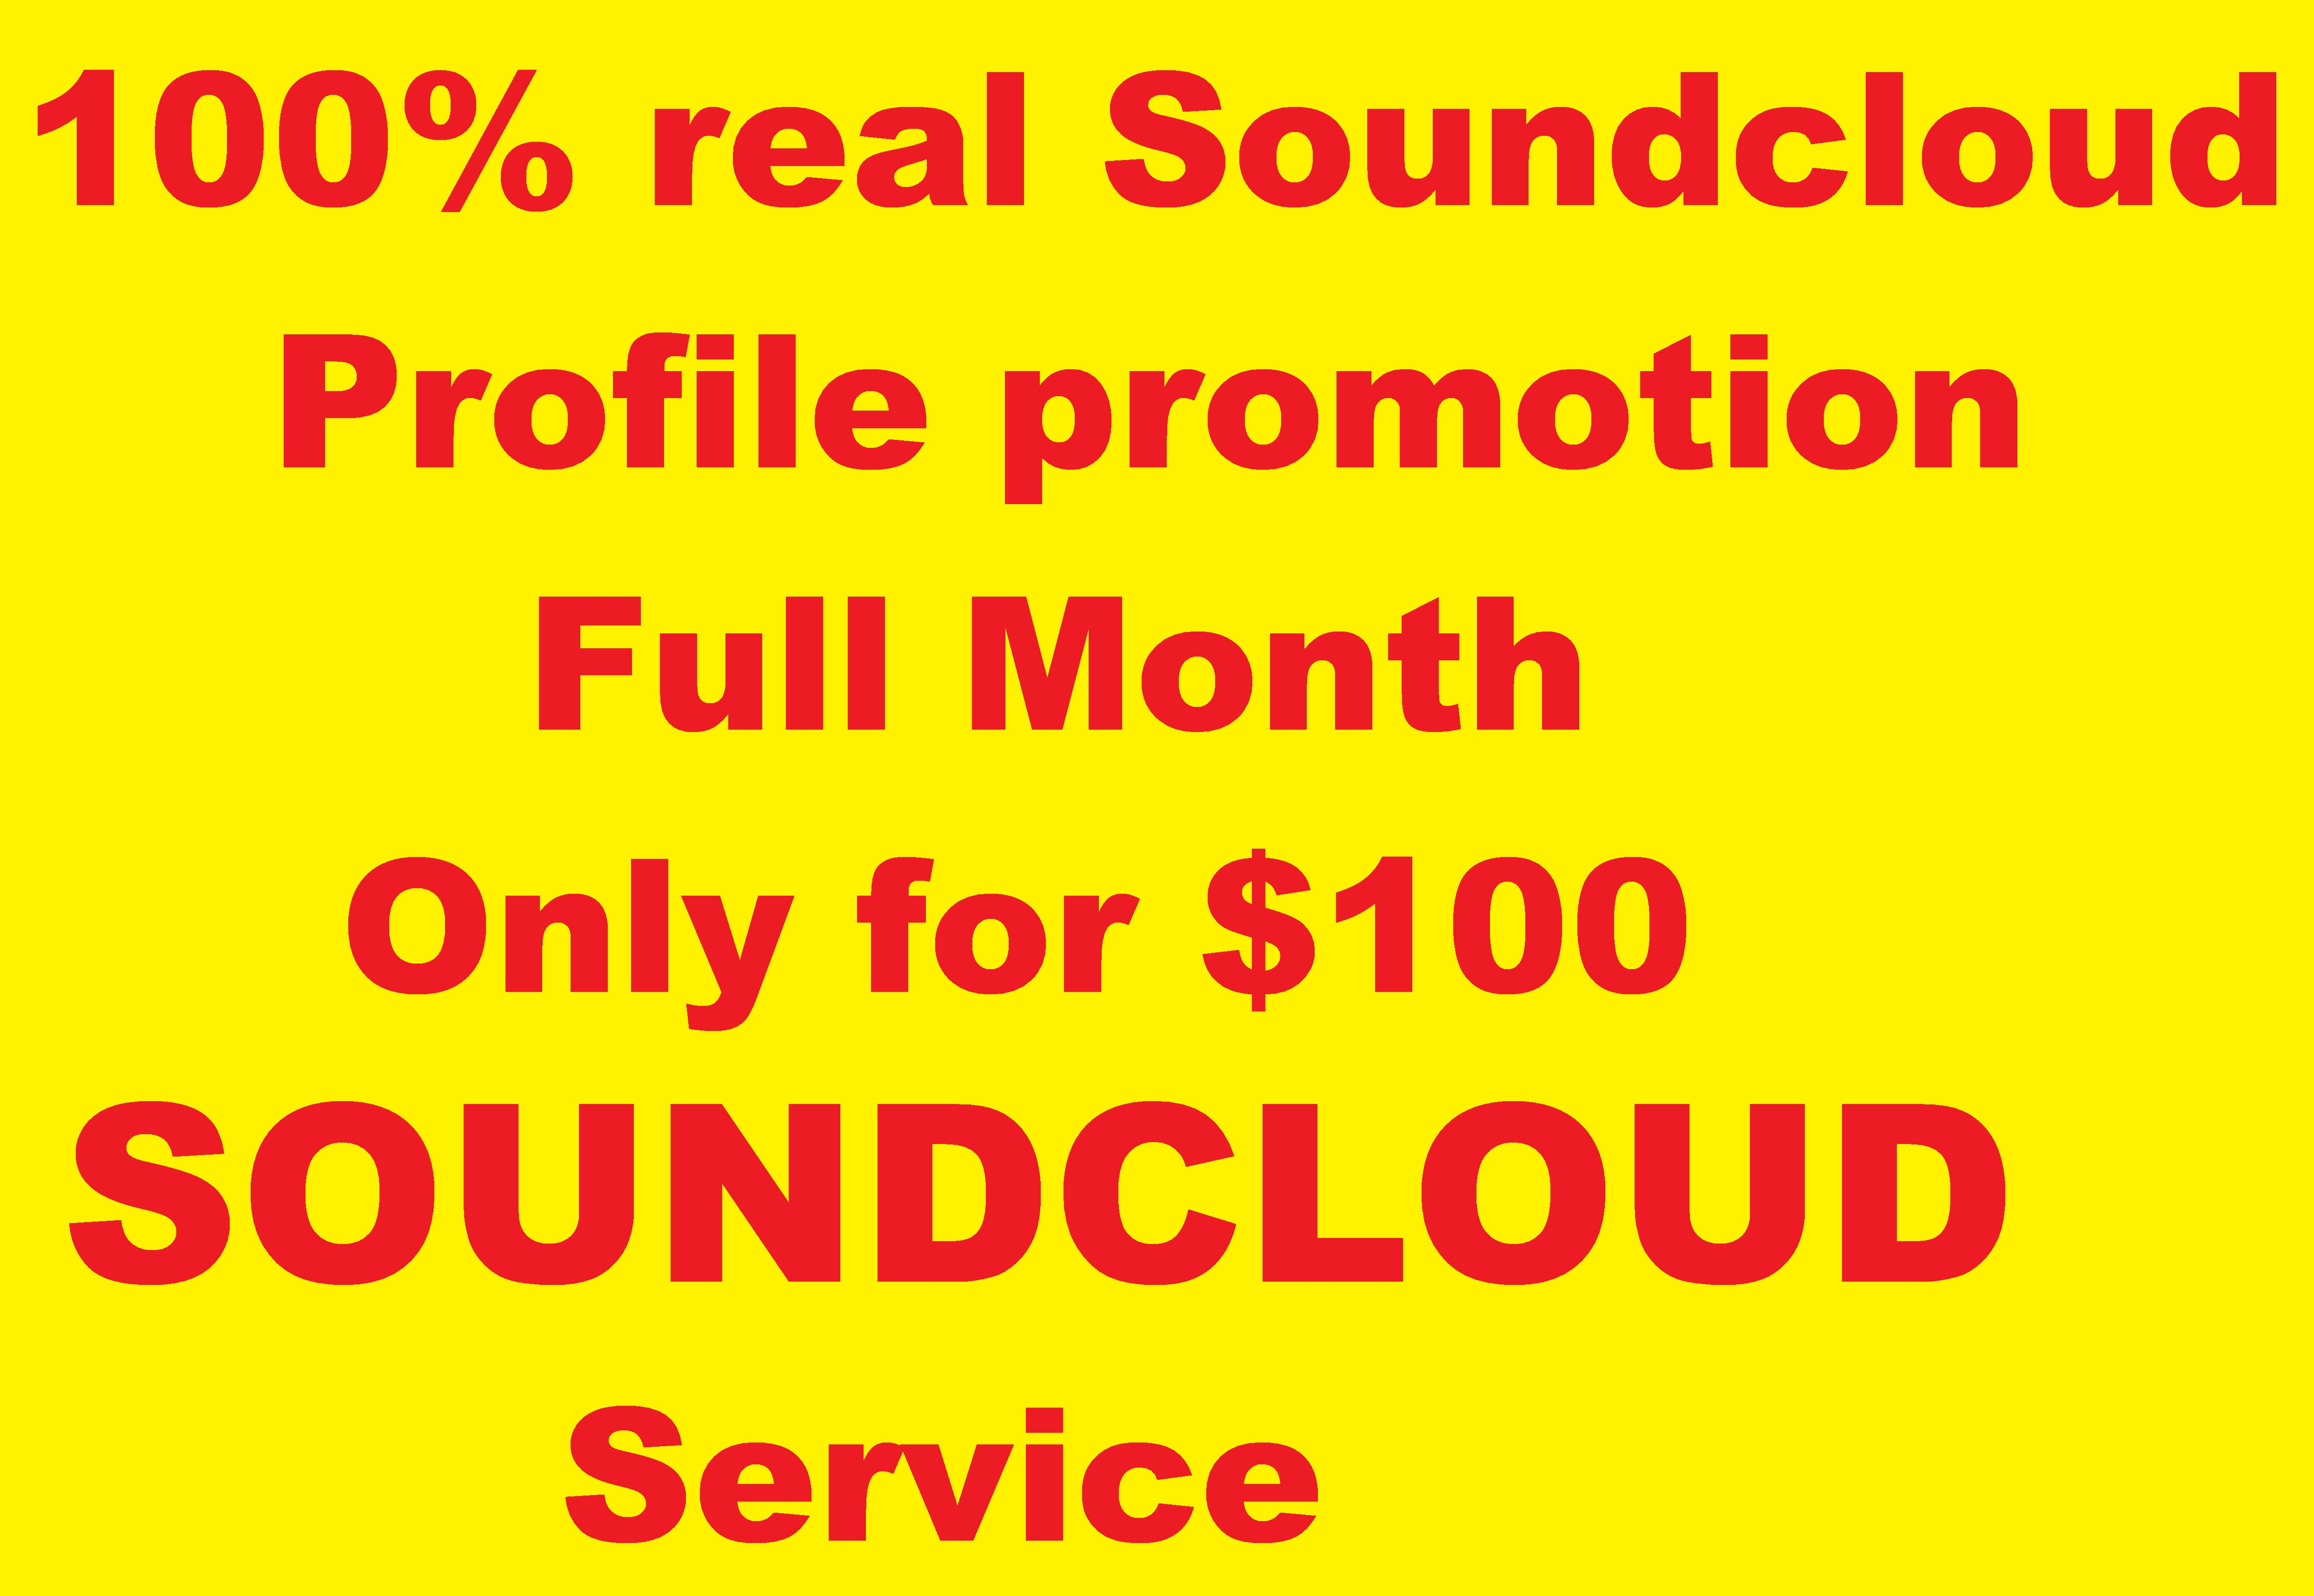 Promote your Soundcloud profile full month